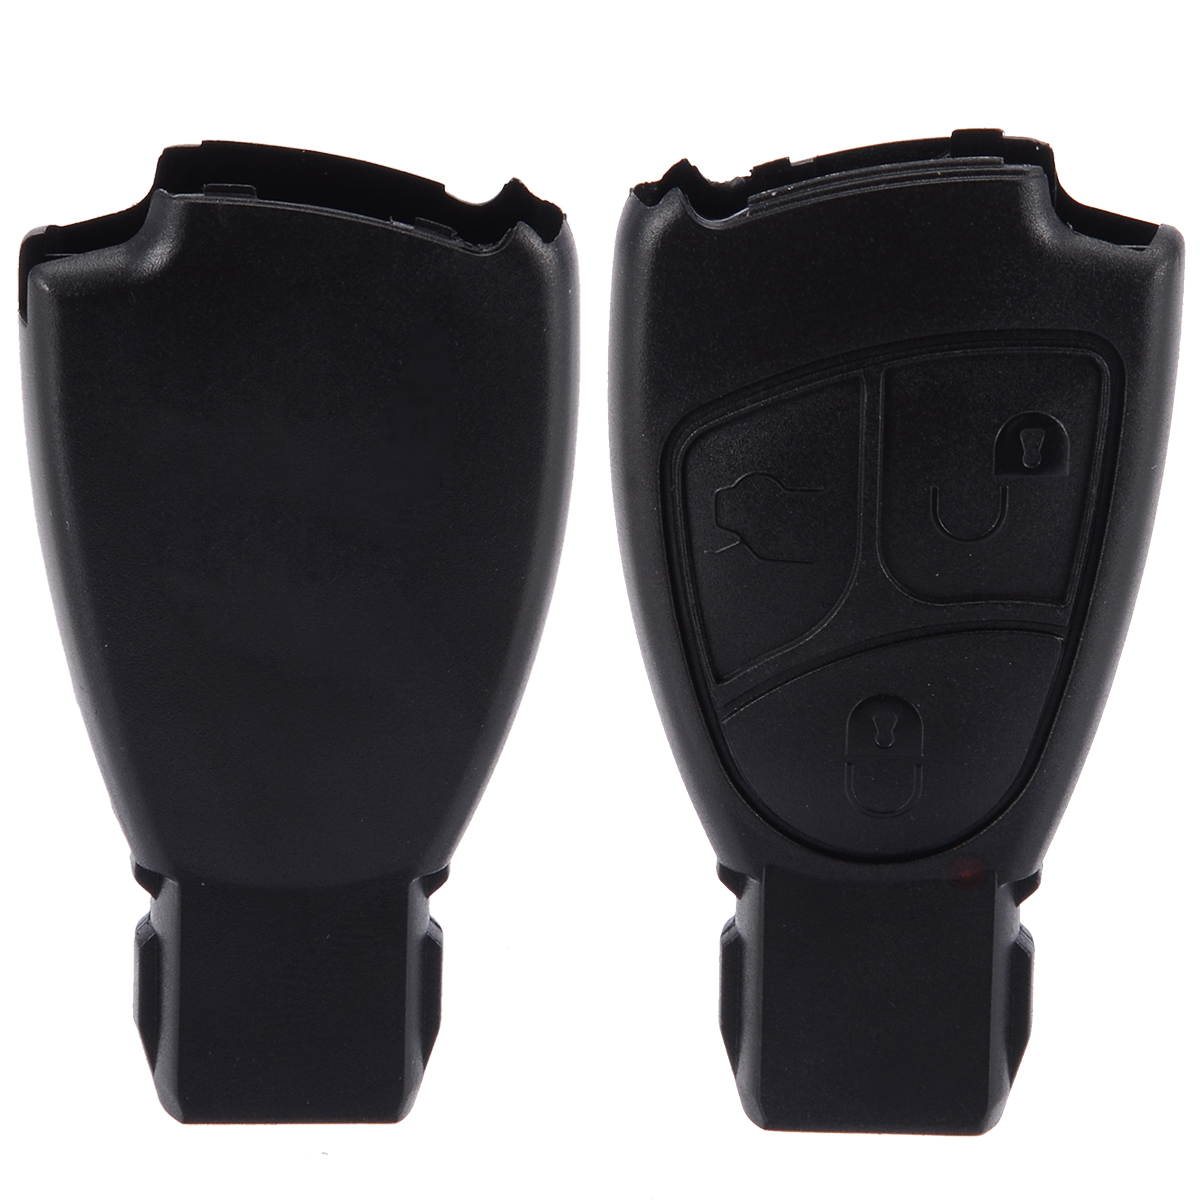 New 3 Button Remote Key Fob Cover Case For Mercedes Benz C ...